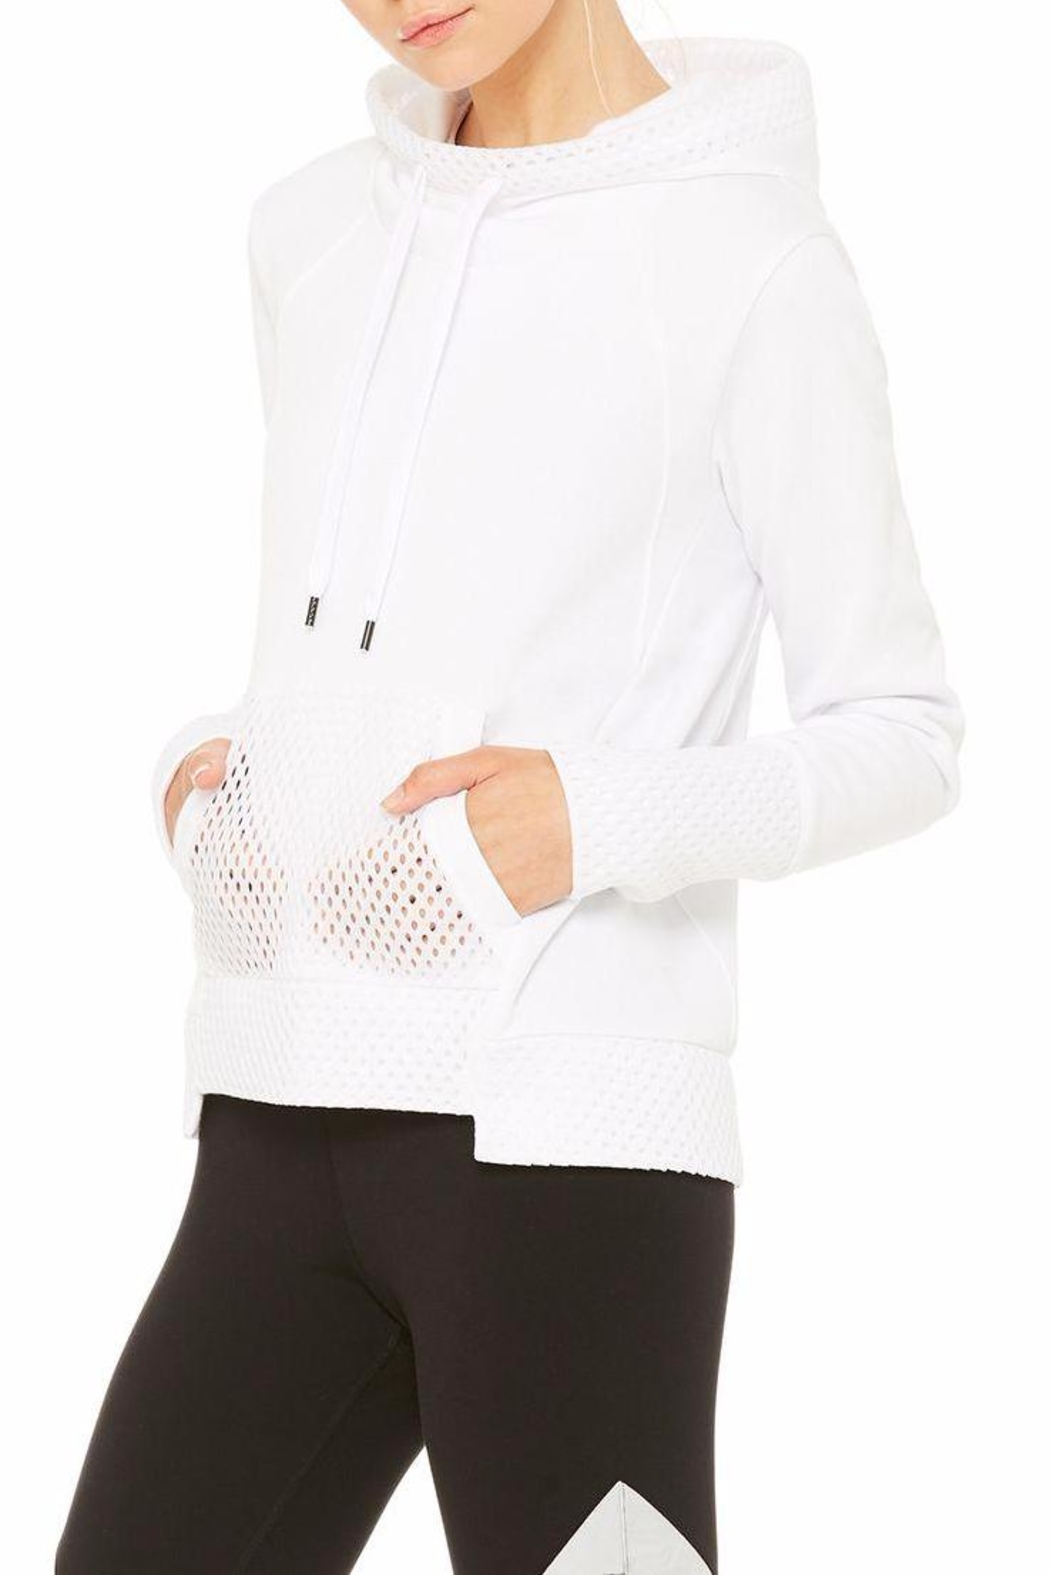 ALO Yoga Eclipse Long-Sleeve Top - Front Full Image